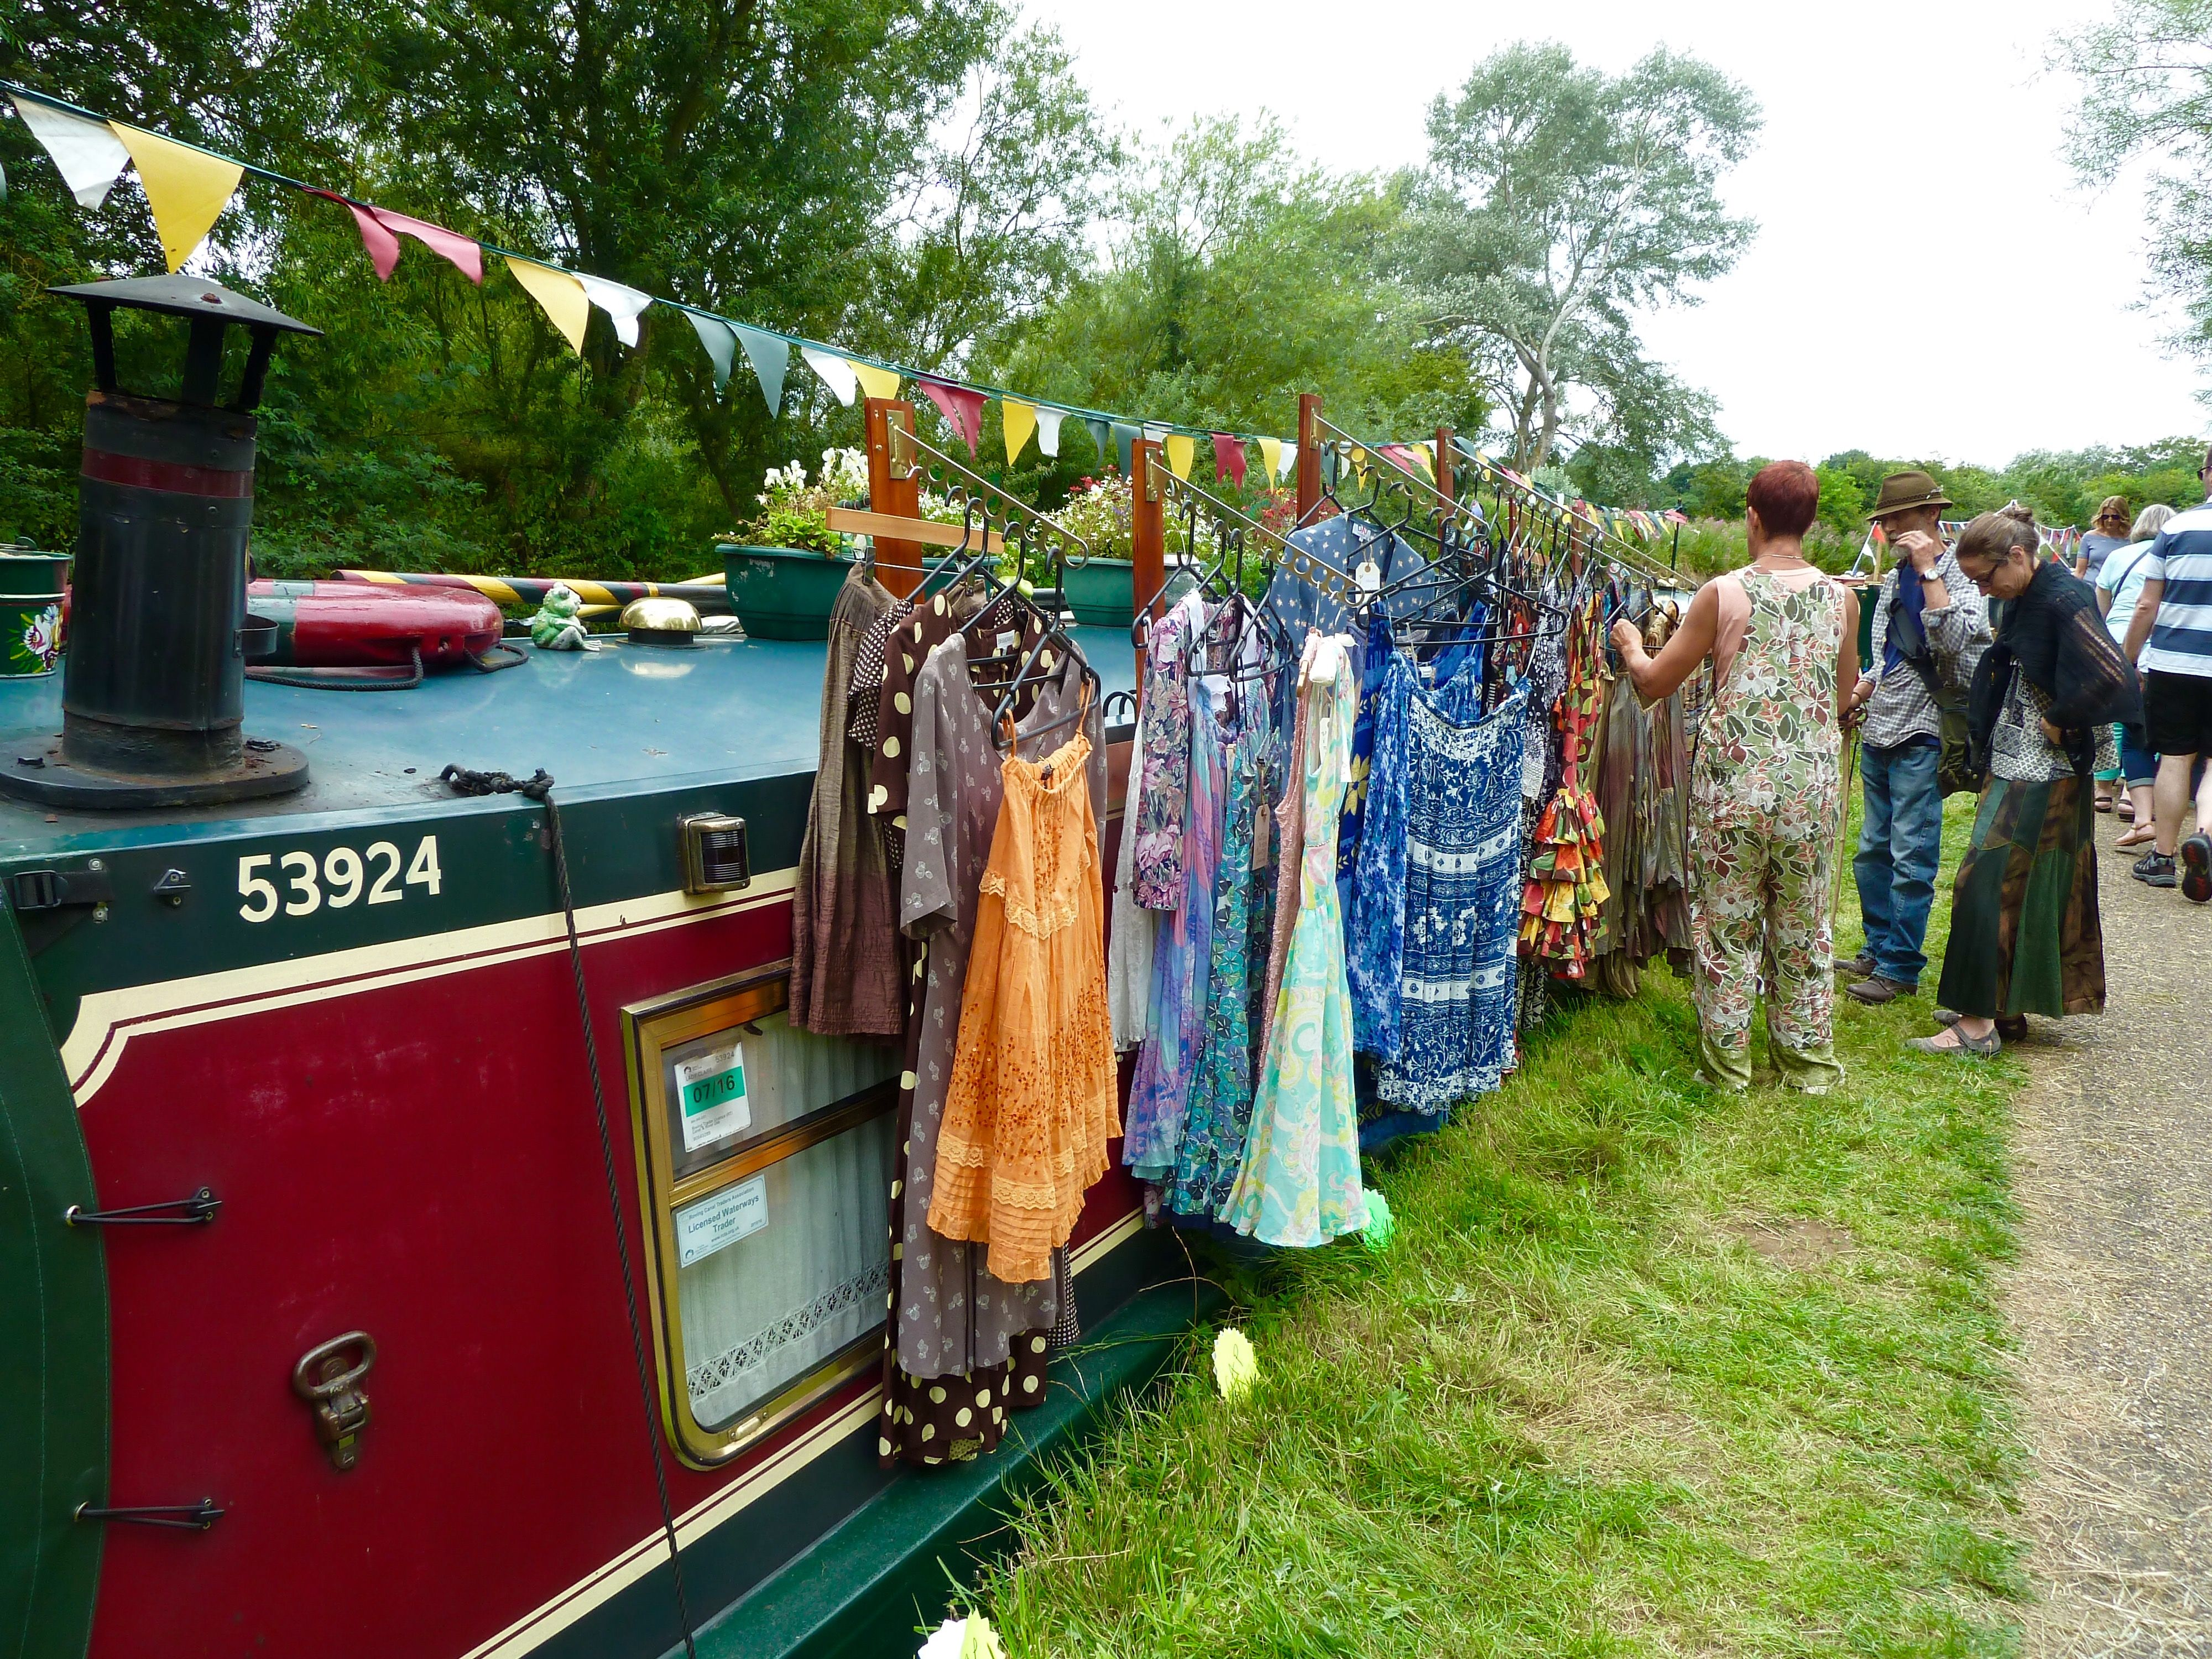 Linslade Canal Festival July 2016